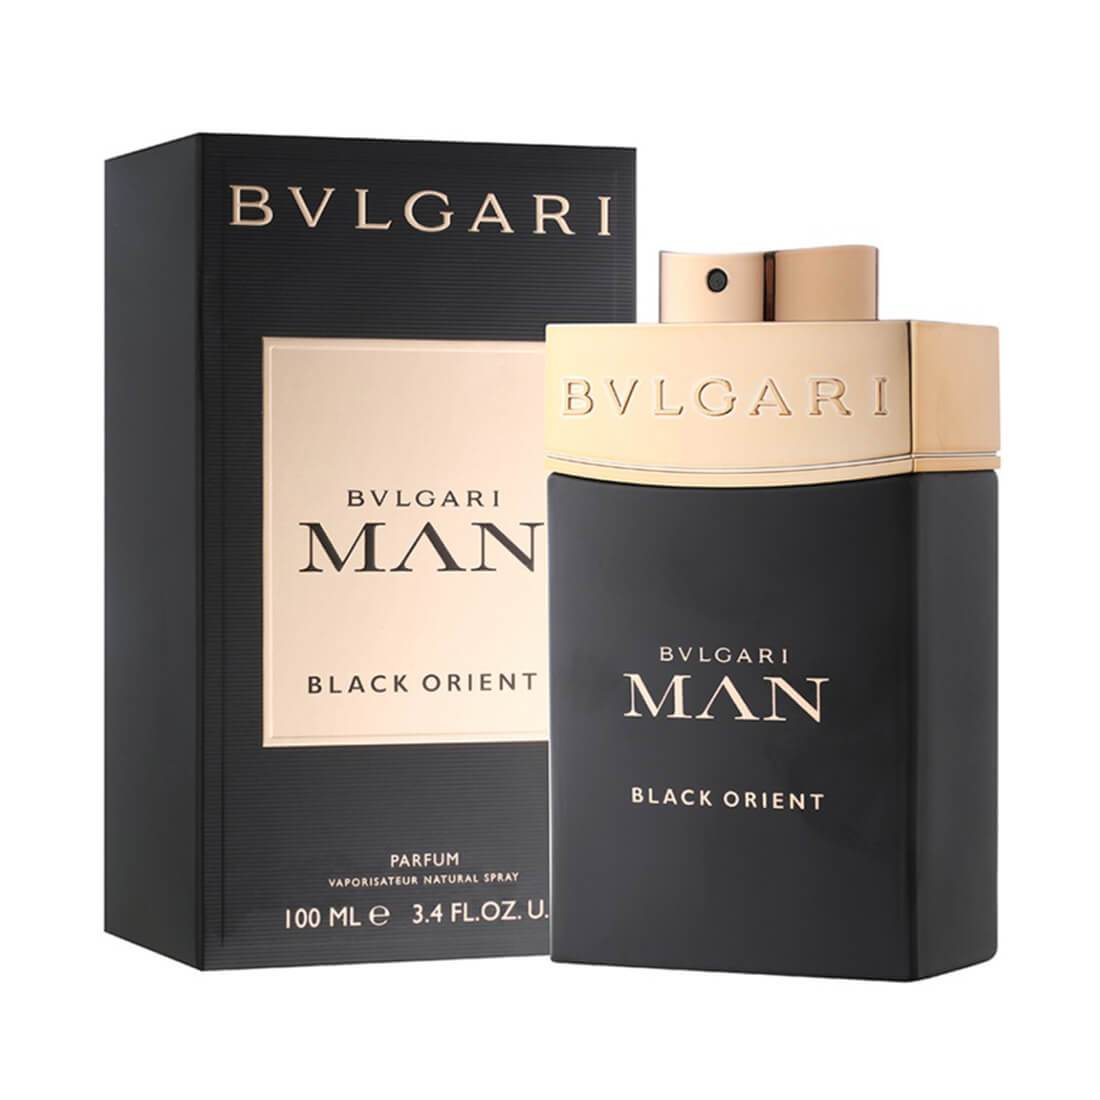 Bvlgari Man in Black Orient EDP Perfume - 100ml